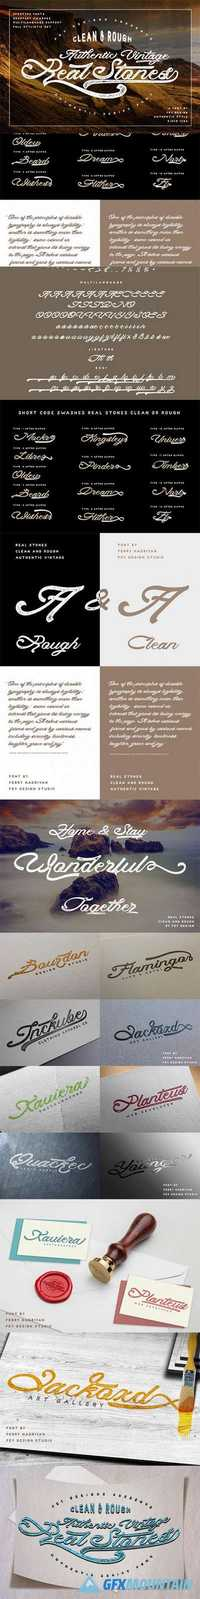 Real Stones - Clean And Rough + Extras Font Family